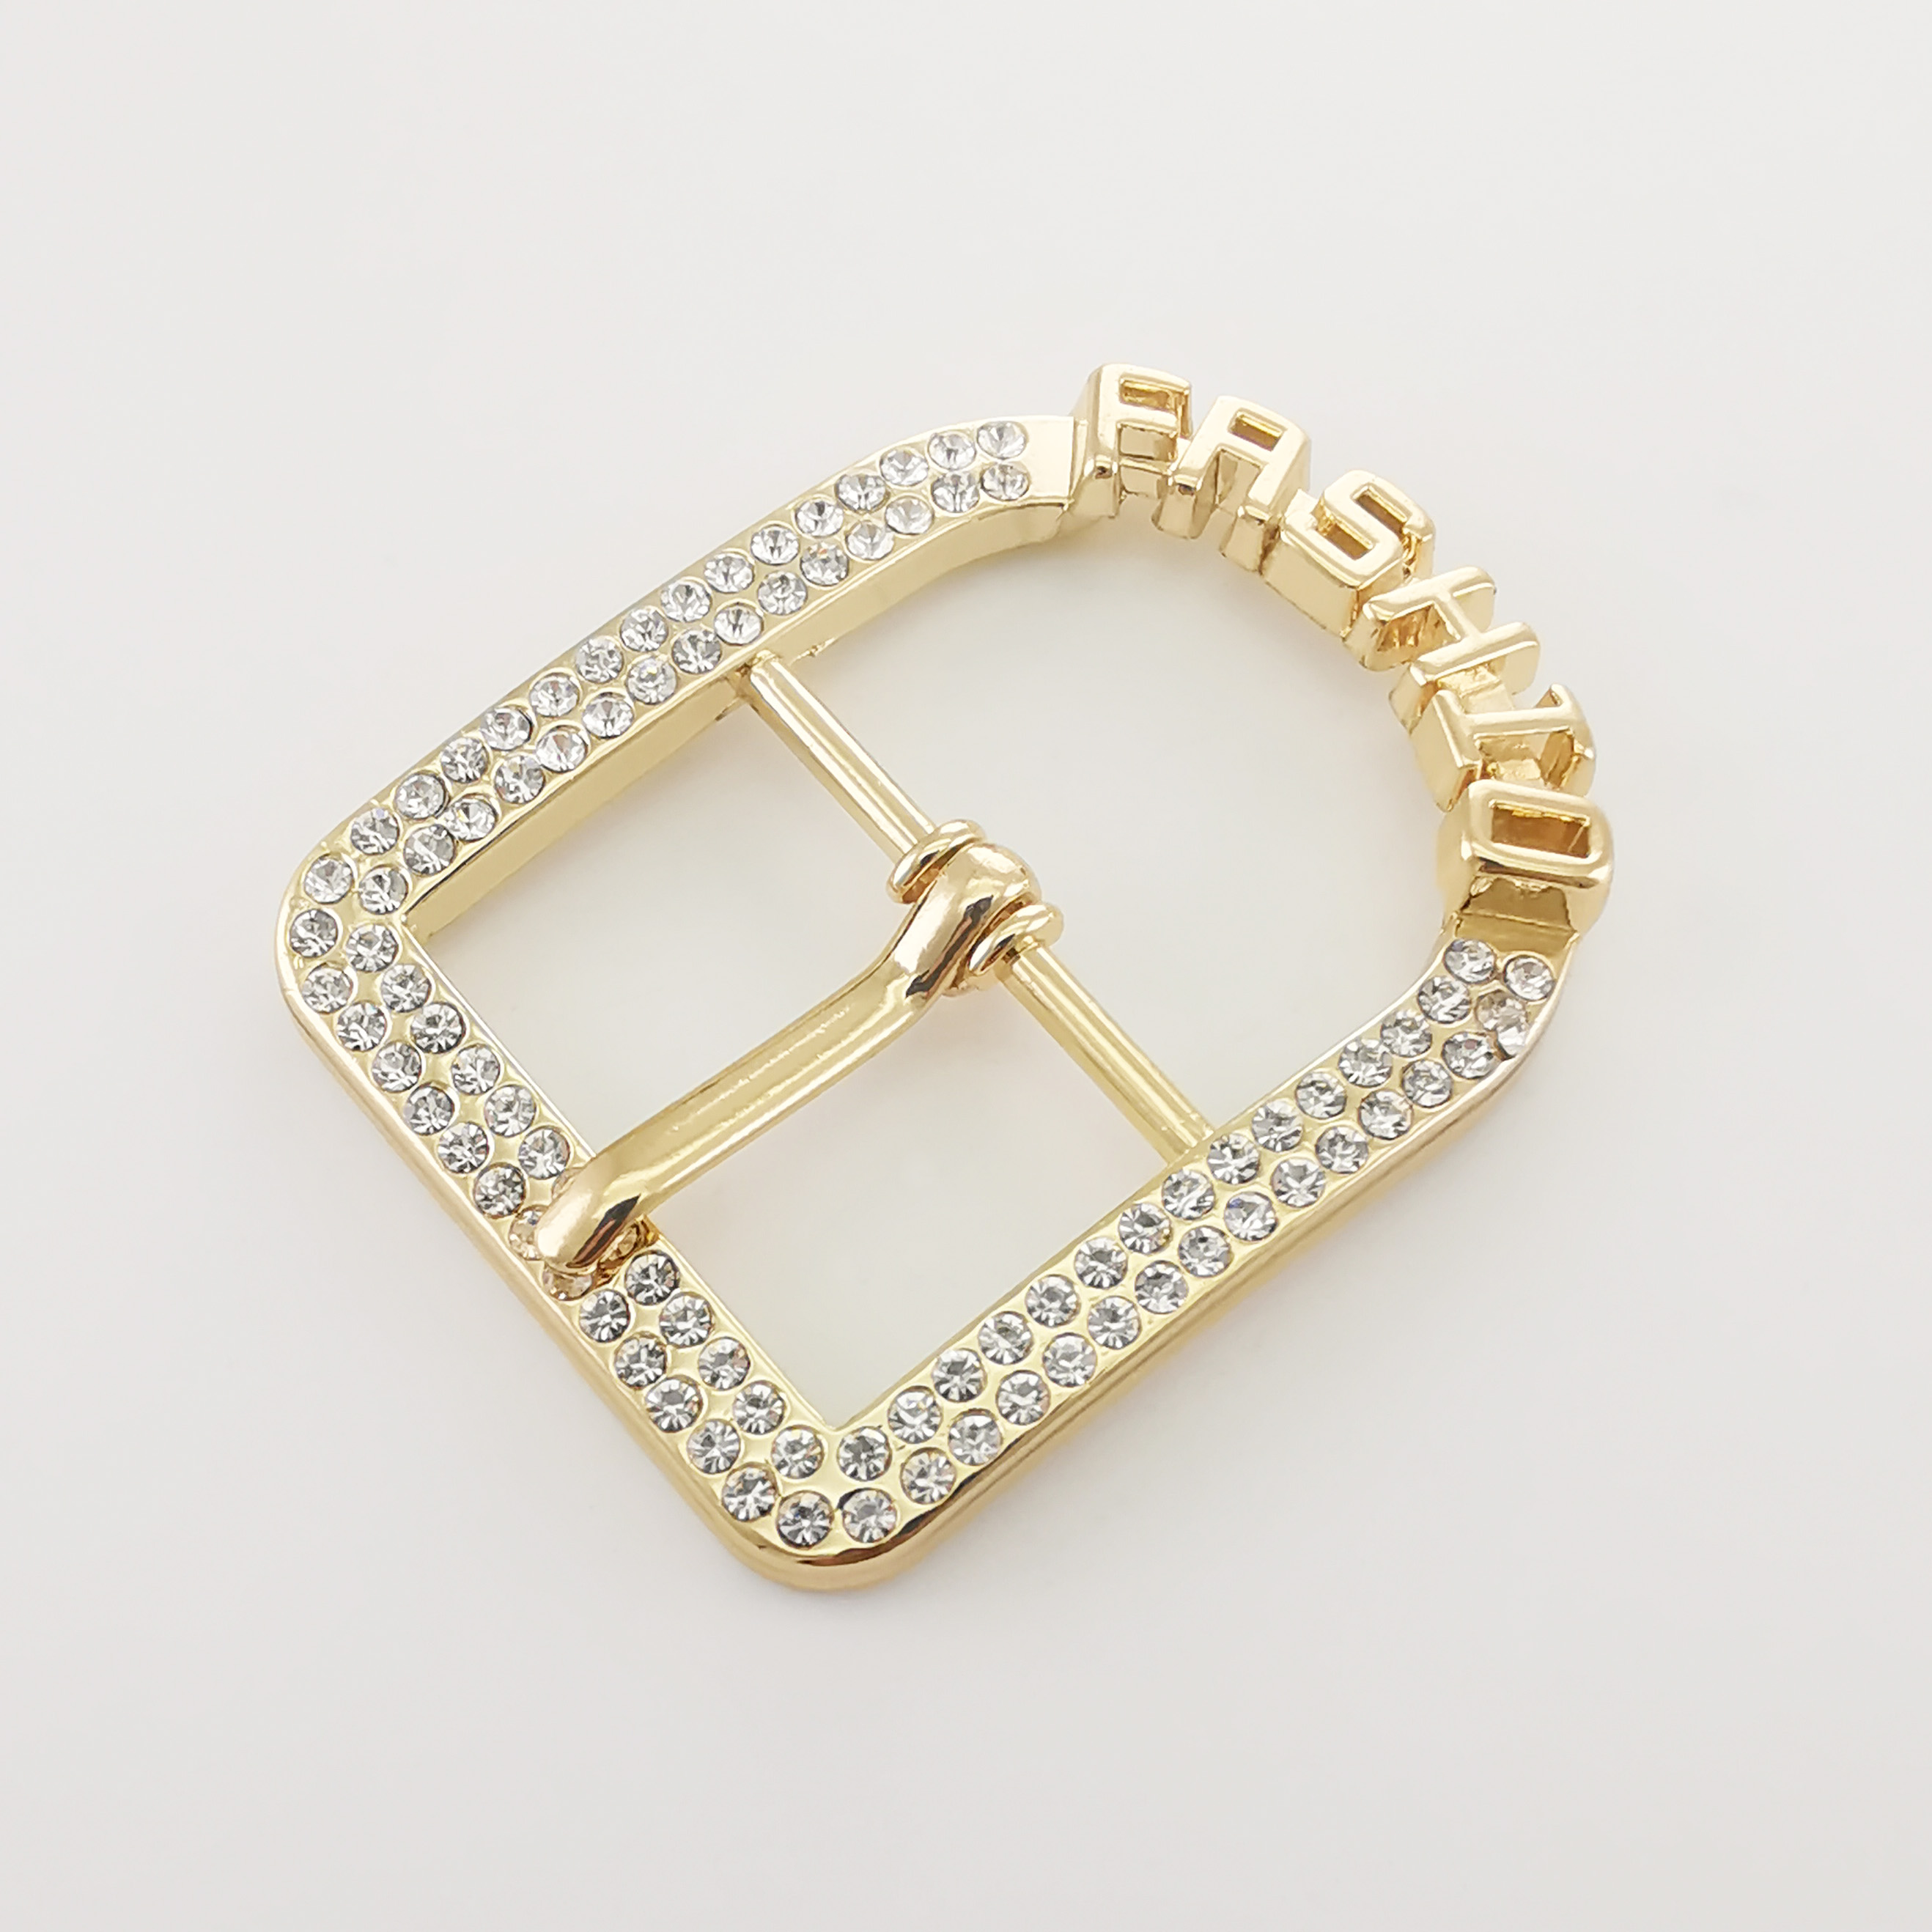 Customized Design High Quality new decorative  shoe metal buckles with hooks accessories components trims